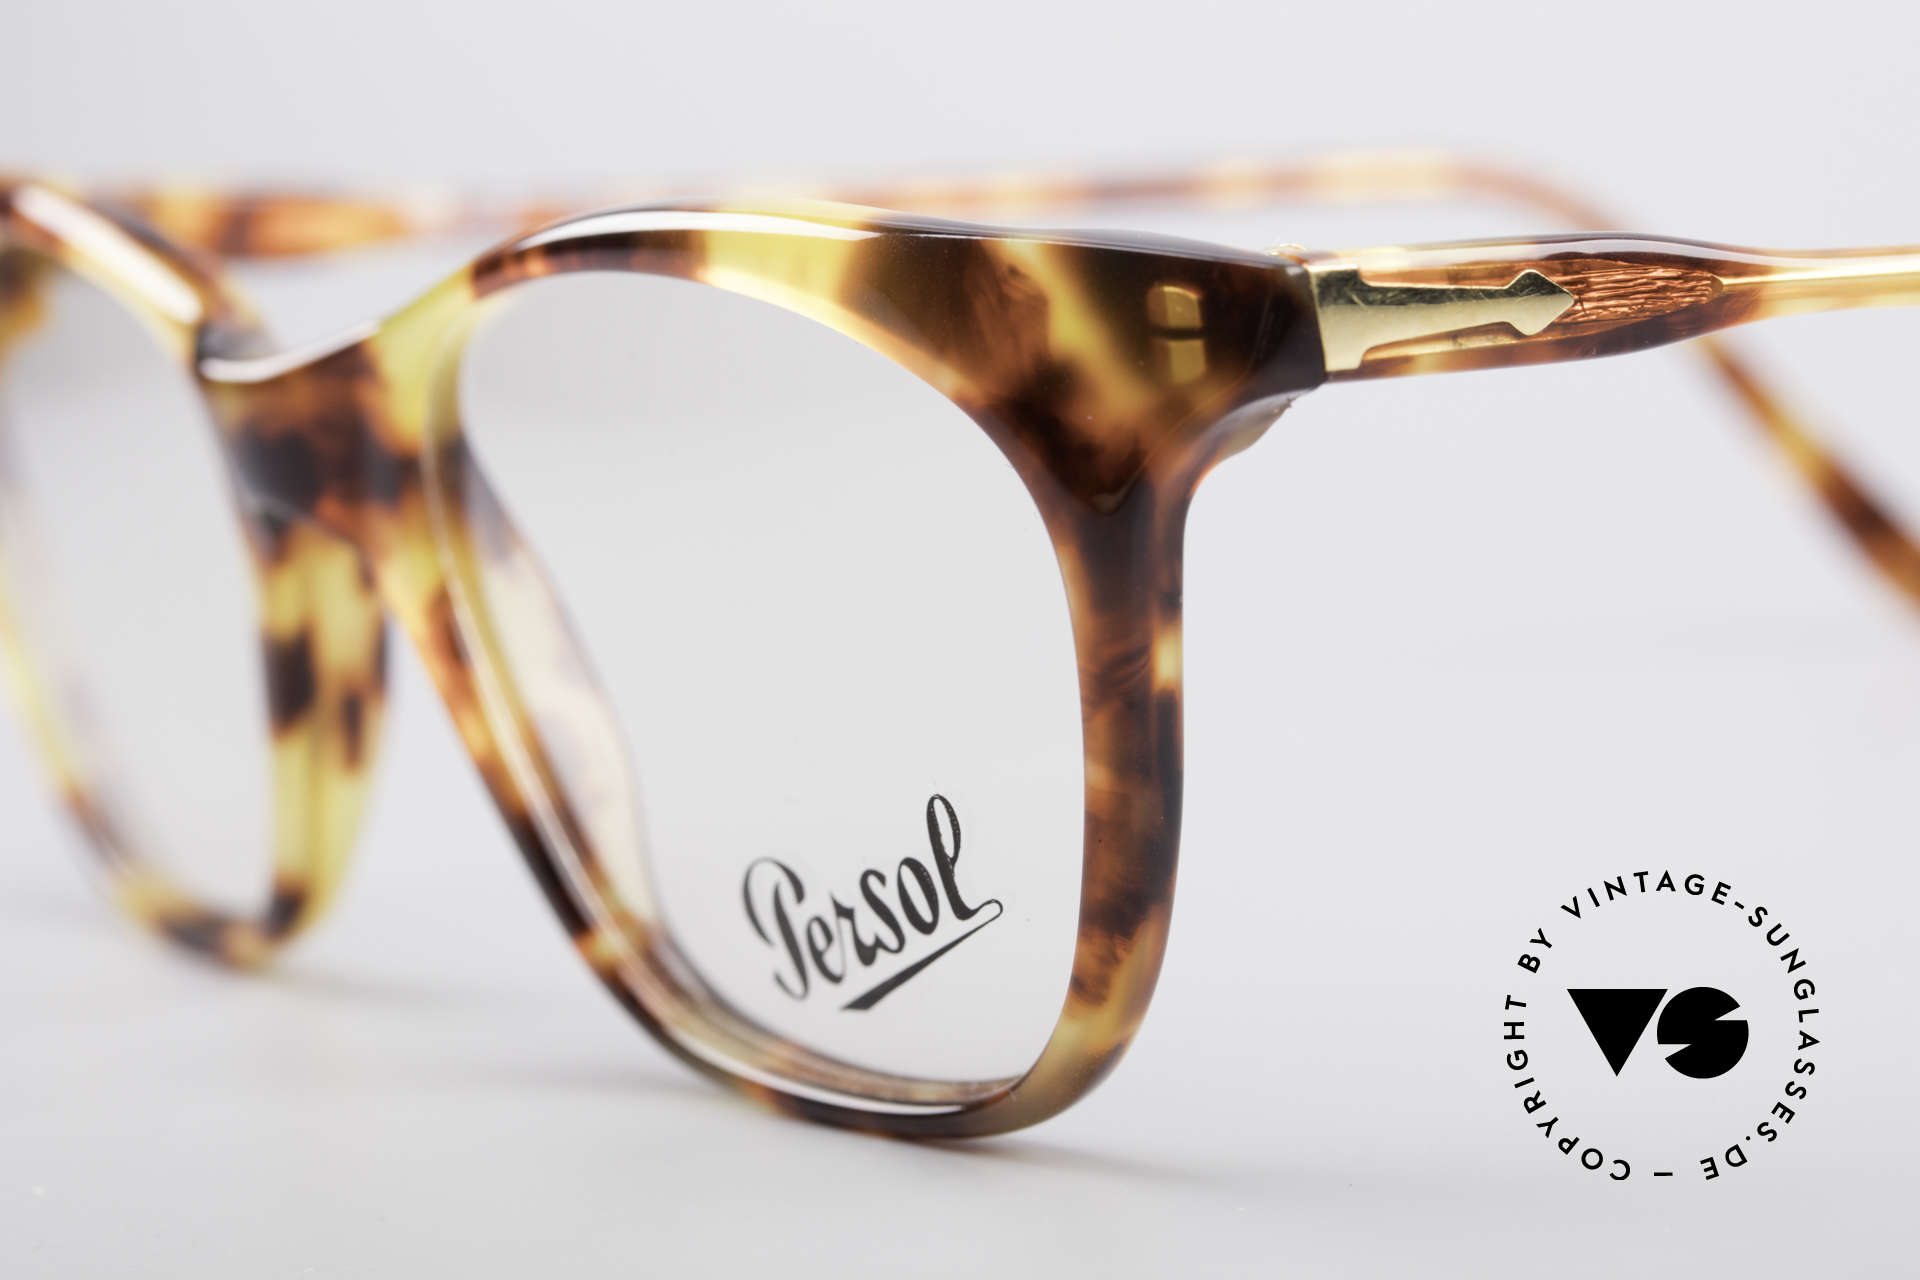 Persol 09194 Classic Vintage Frame, unworn (like all our vintage PERSOL glasses), Made for Women